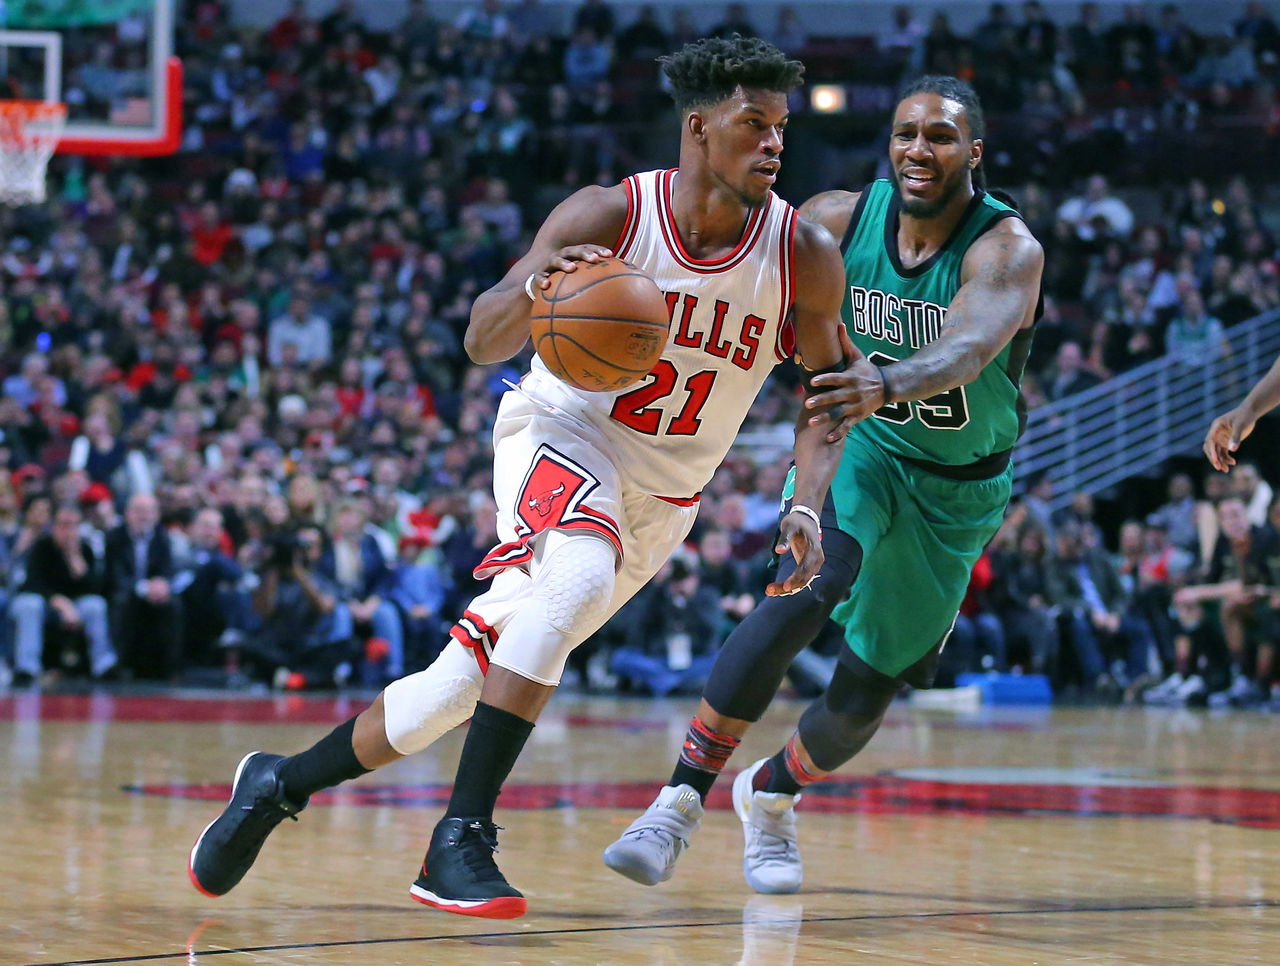 Cropped 2017 02 17t034301z 1364202721 nocid rtrmadp 3 nba boston celtics at chicago bulls